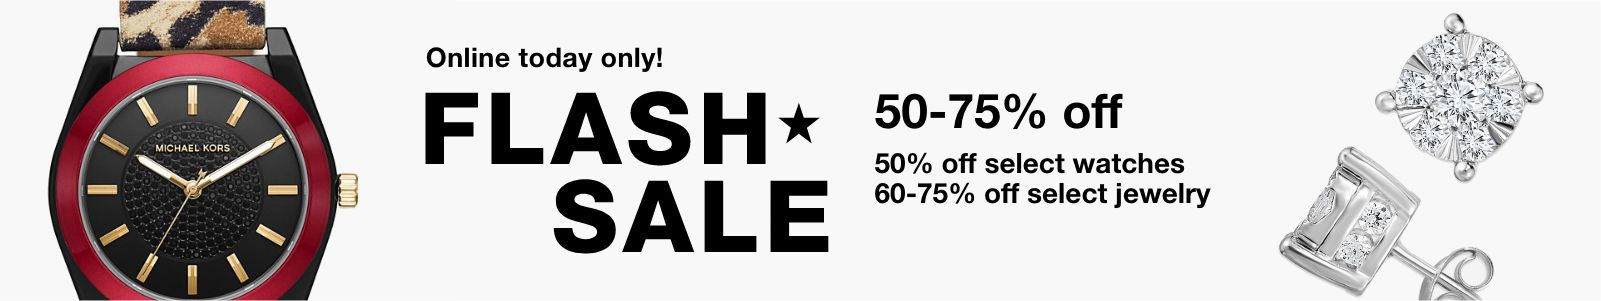 Flash Sale 60-75 percent off select jewelry, 50 percent off select watches